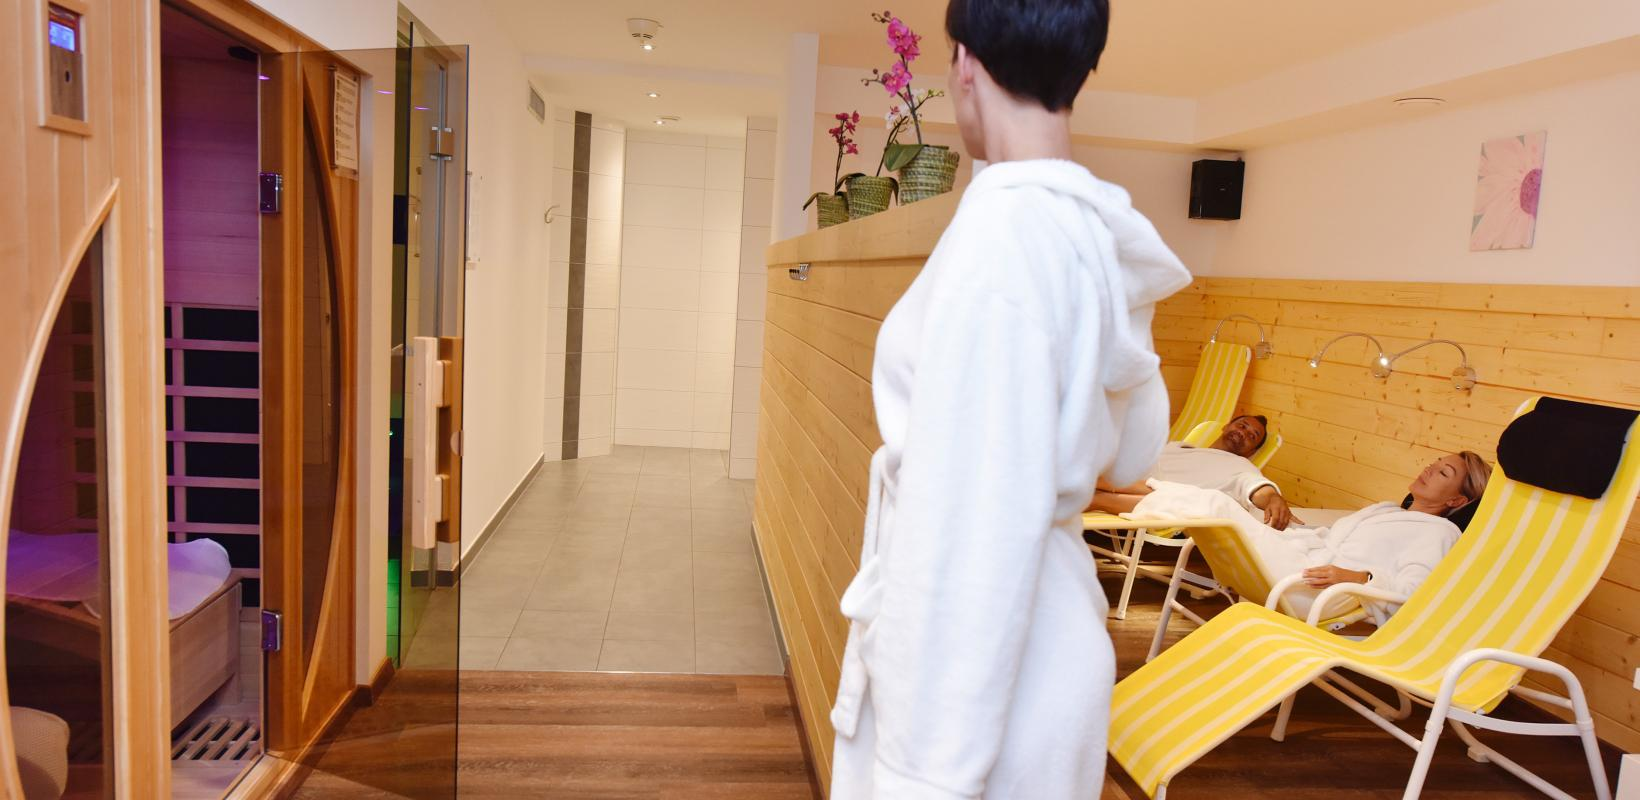 Wellnessbereich des Hotel Vallüla St. Gallenkirch